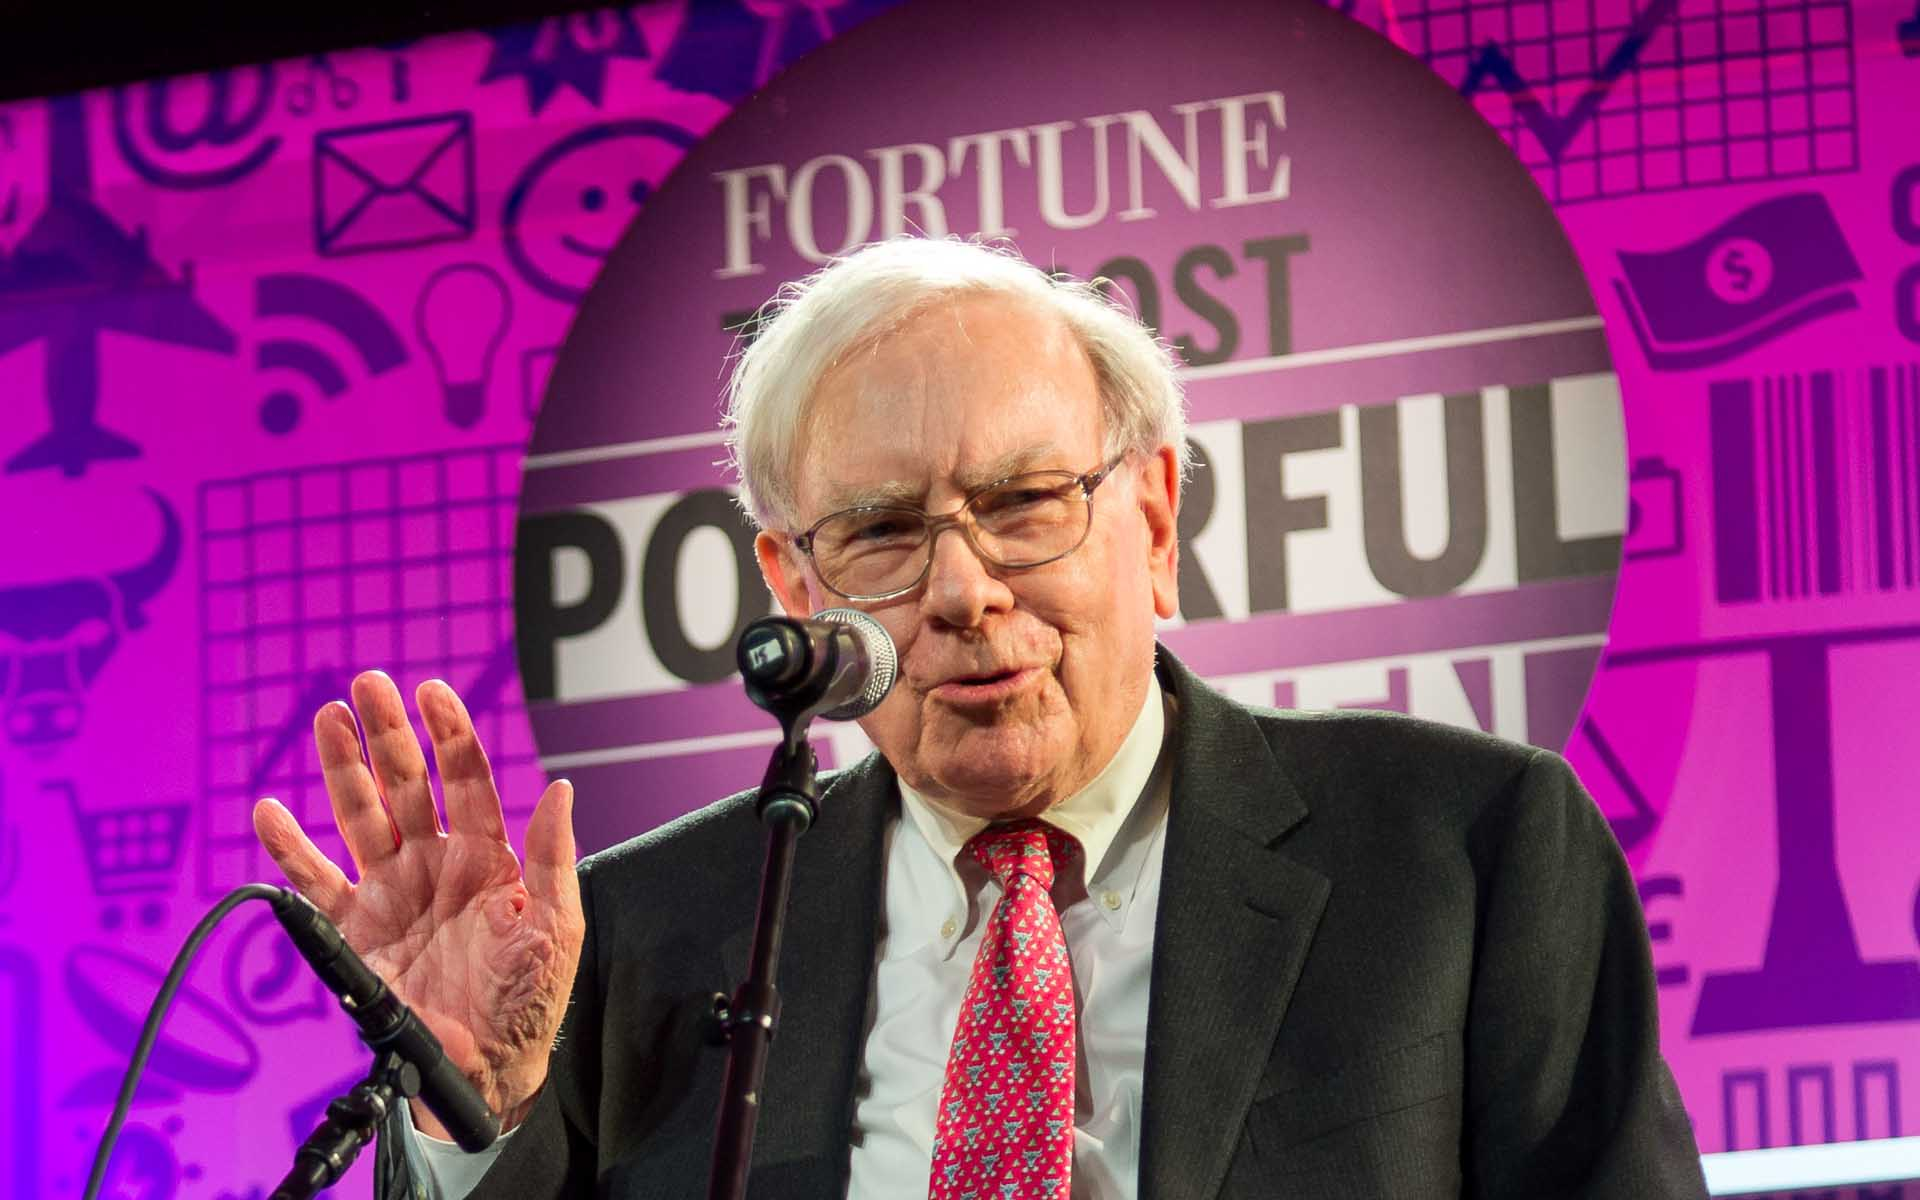 Warren Buffett is coined by Crypto Miner for his negative Bitcoin comments